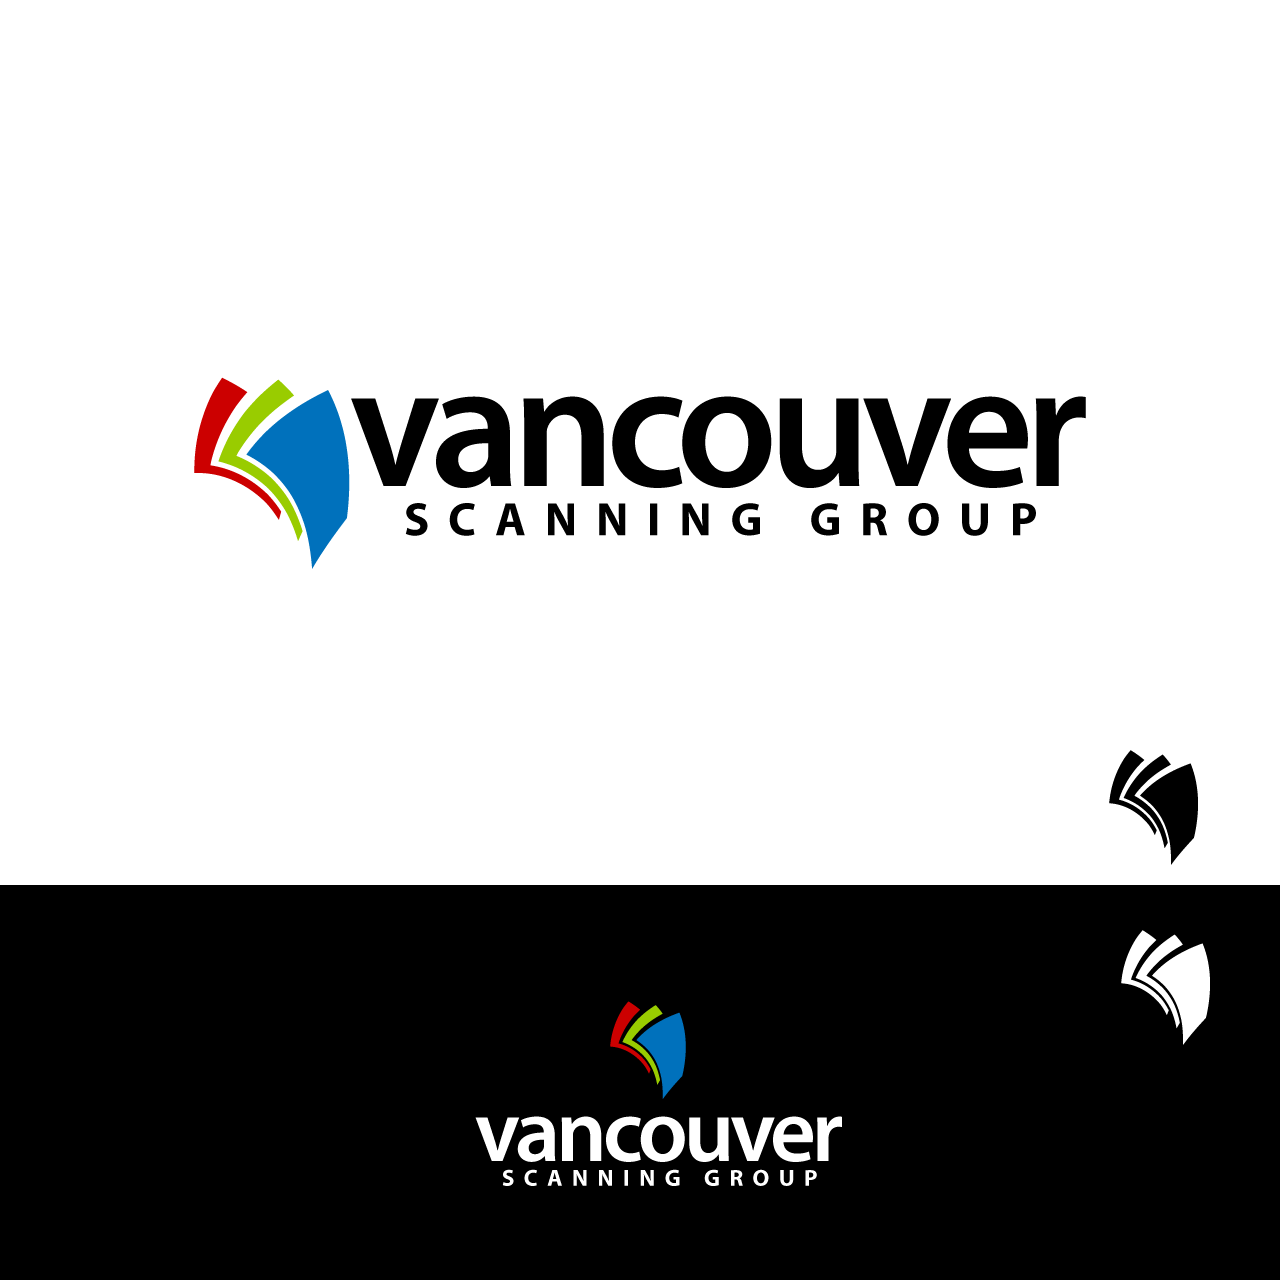 Logo Design by umxca - Entry No. 124 in the Logo Design Contest Vancouver Scanning Group.